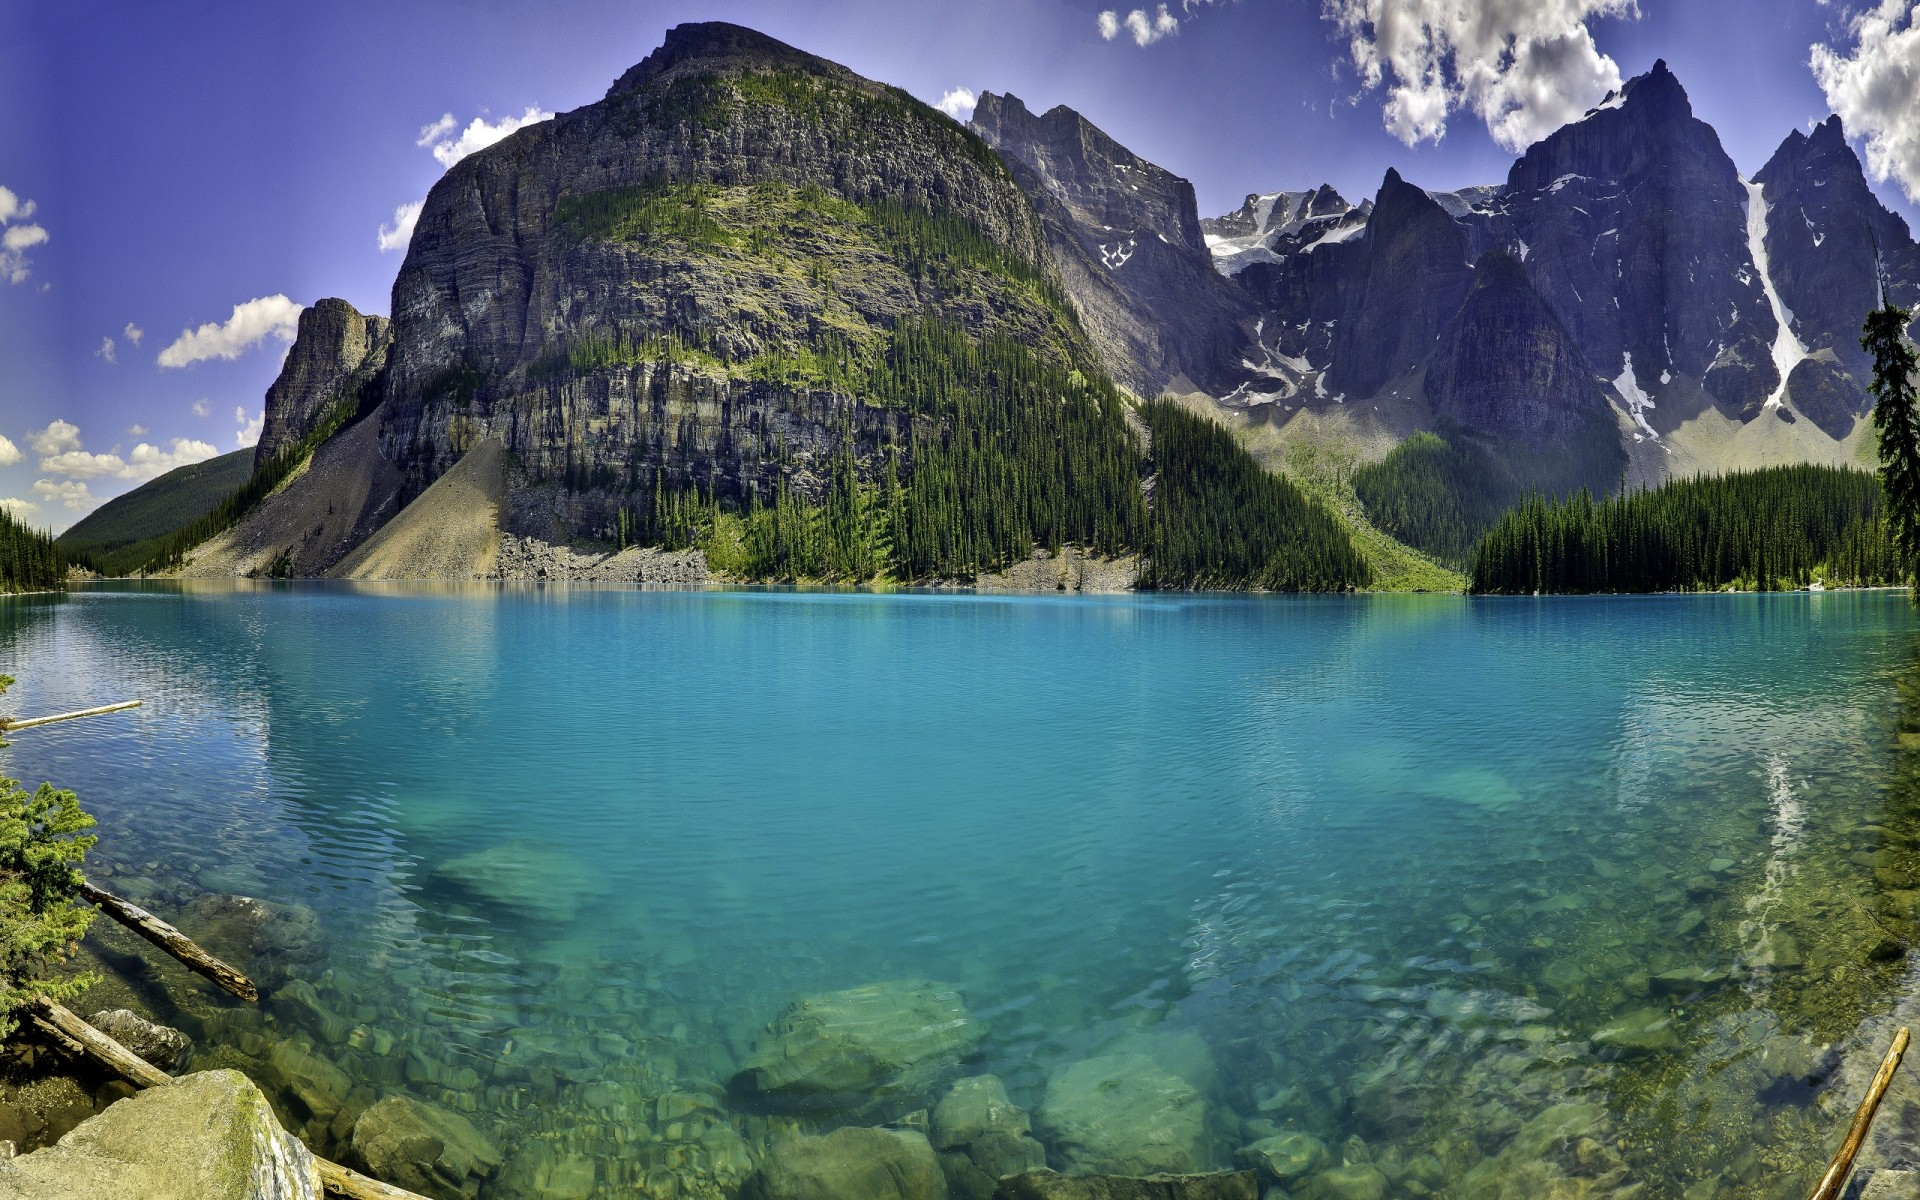 landscapes water lake landscape mountain travel scenic reflection nature outdoors rock sky daylight